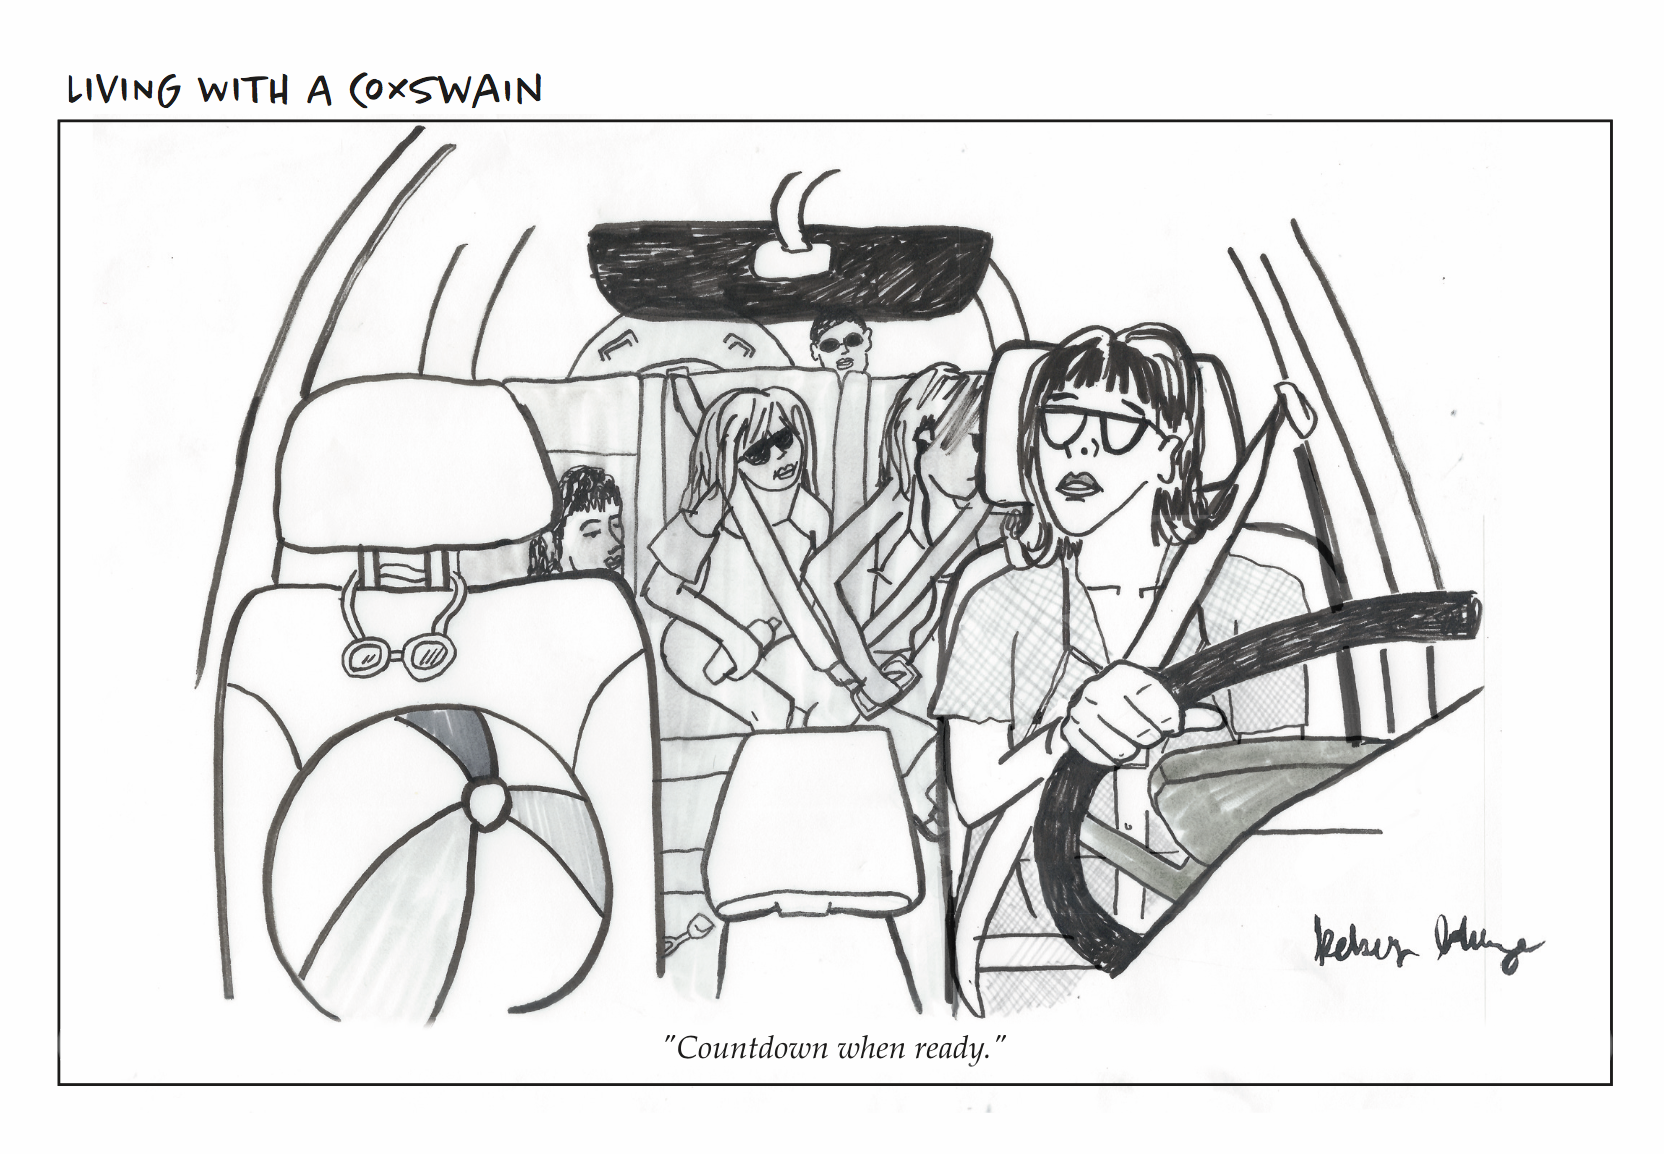 57-living-with-a-coxswain.png